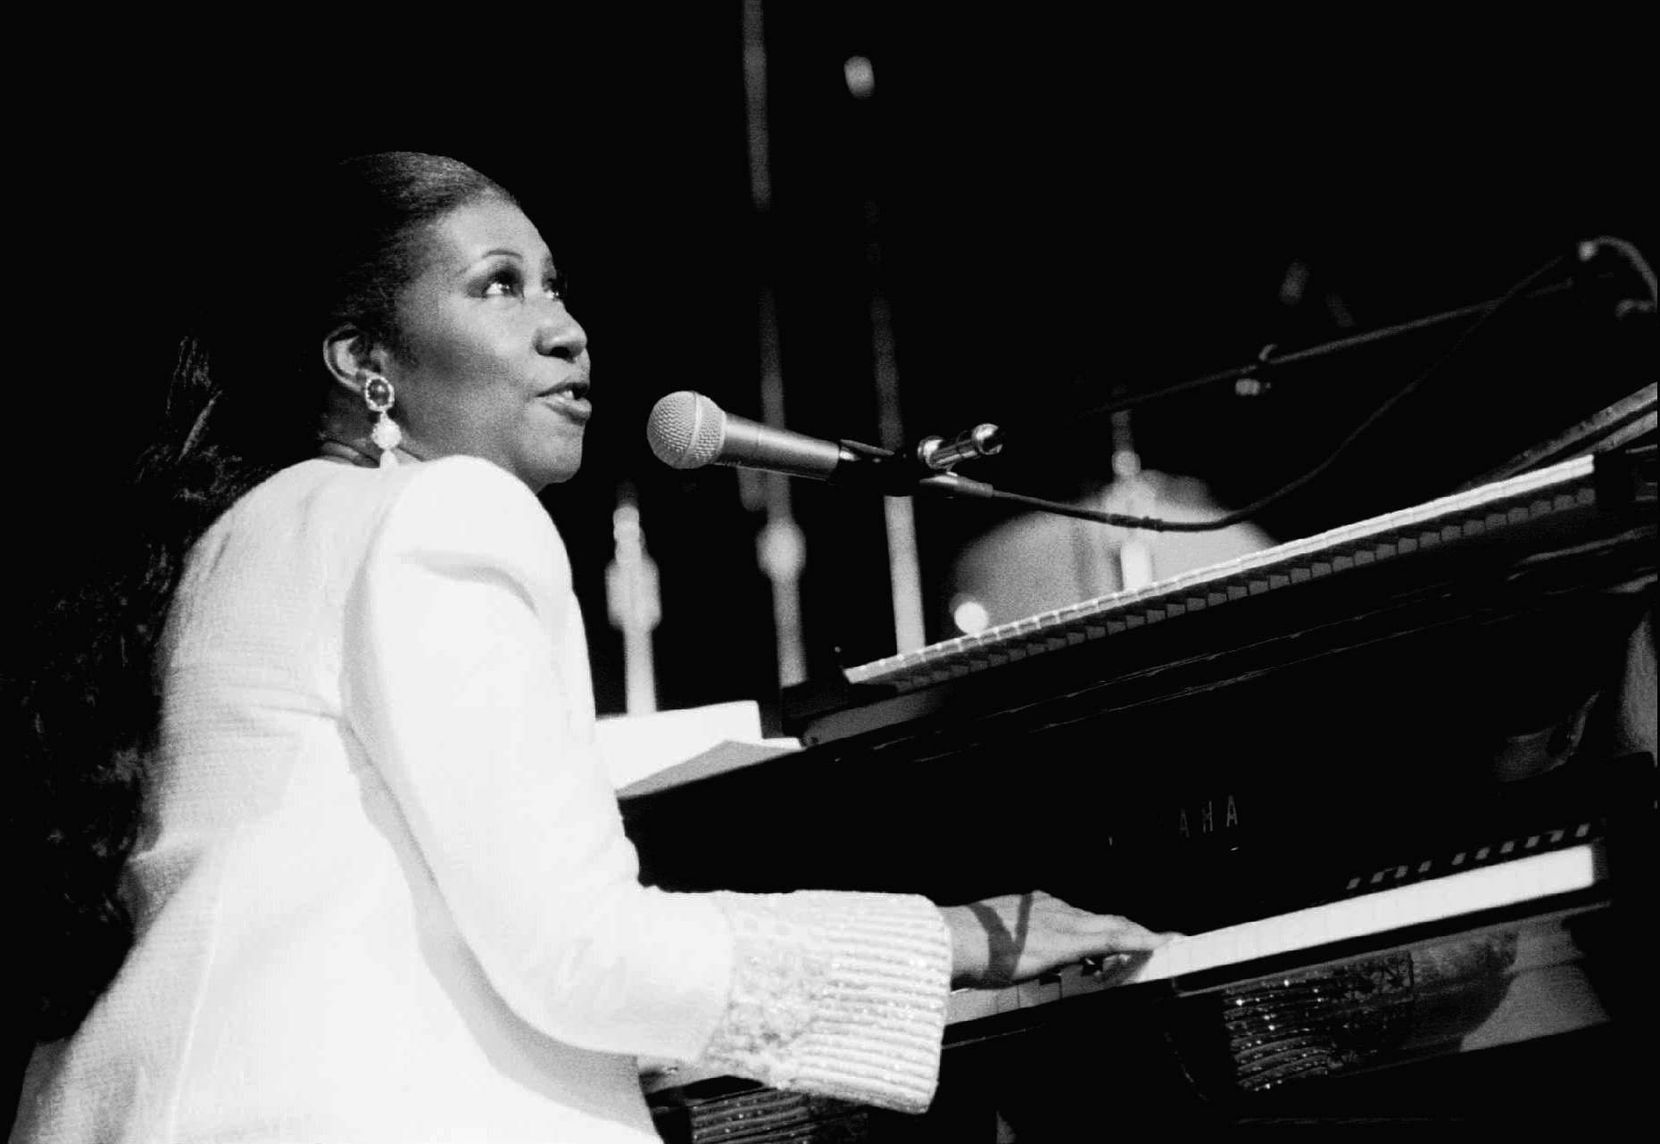 In July of 1992, Aretha Franklin sang the national anthem at a tribute for Jesse Jackson at the Apollo Theater in Harlem Sunday afternoon, at the start of the week of the 1992 Democratic National Convention in New York City, in which Arkansas Gov. Bill Clinton would accept the party's nomination.